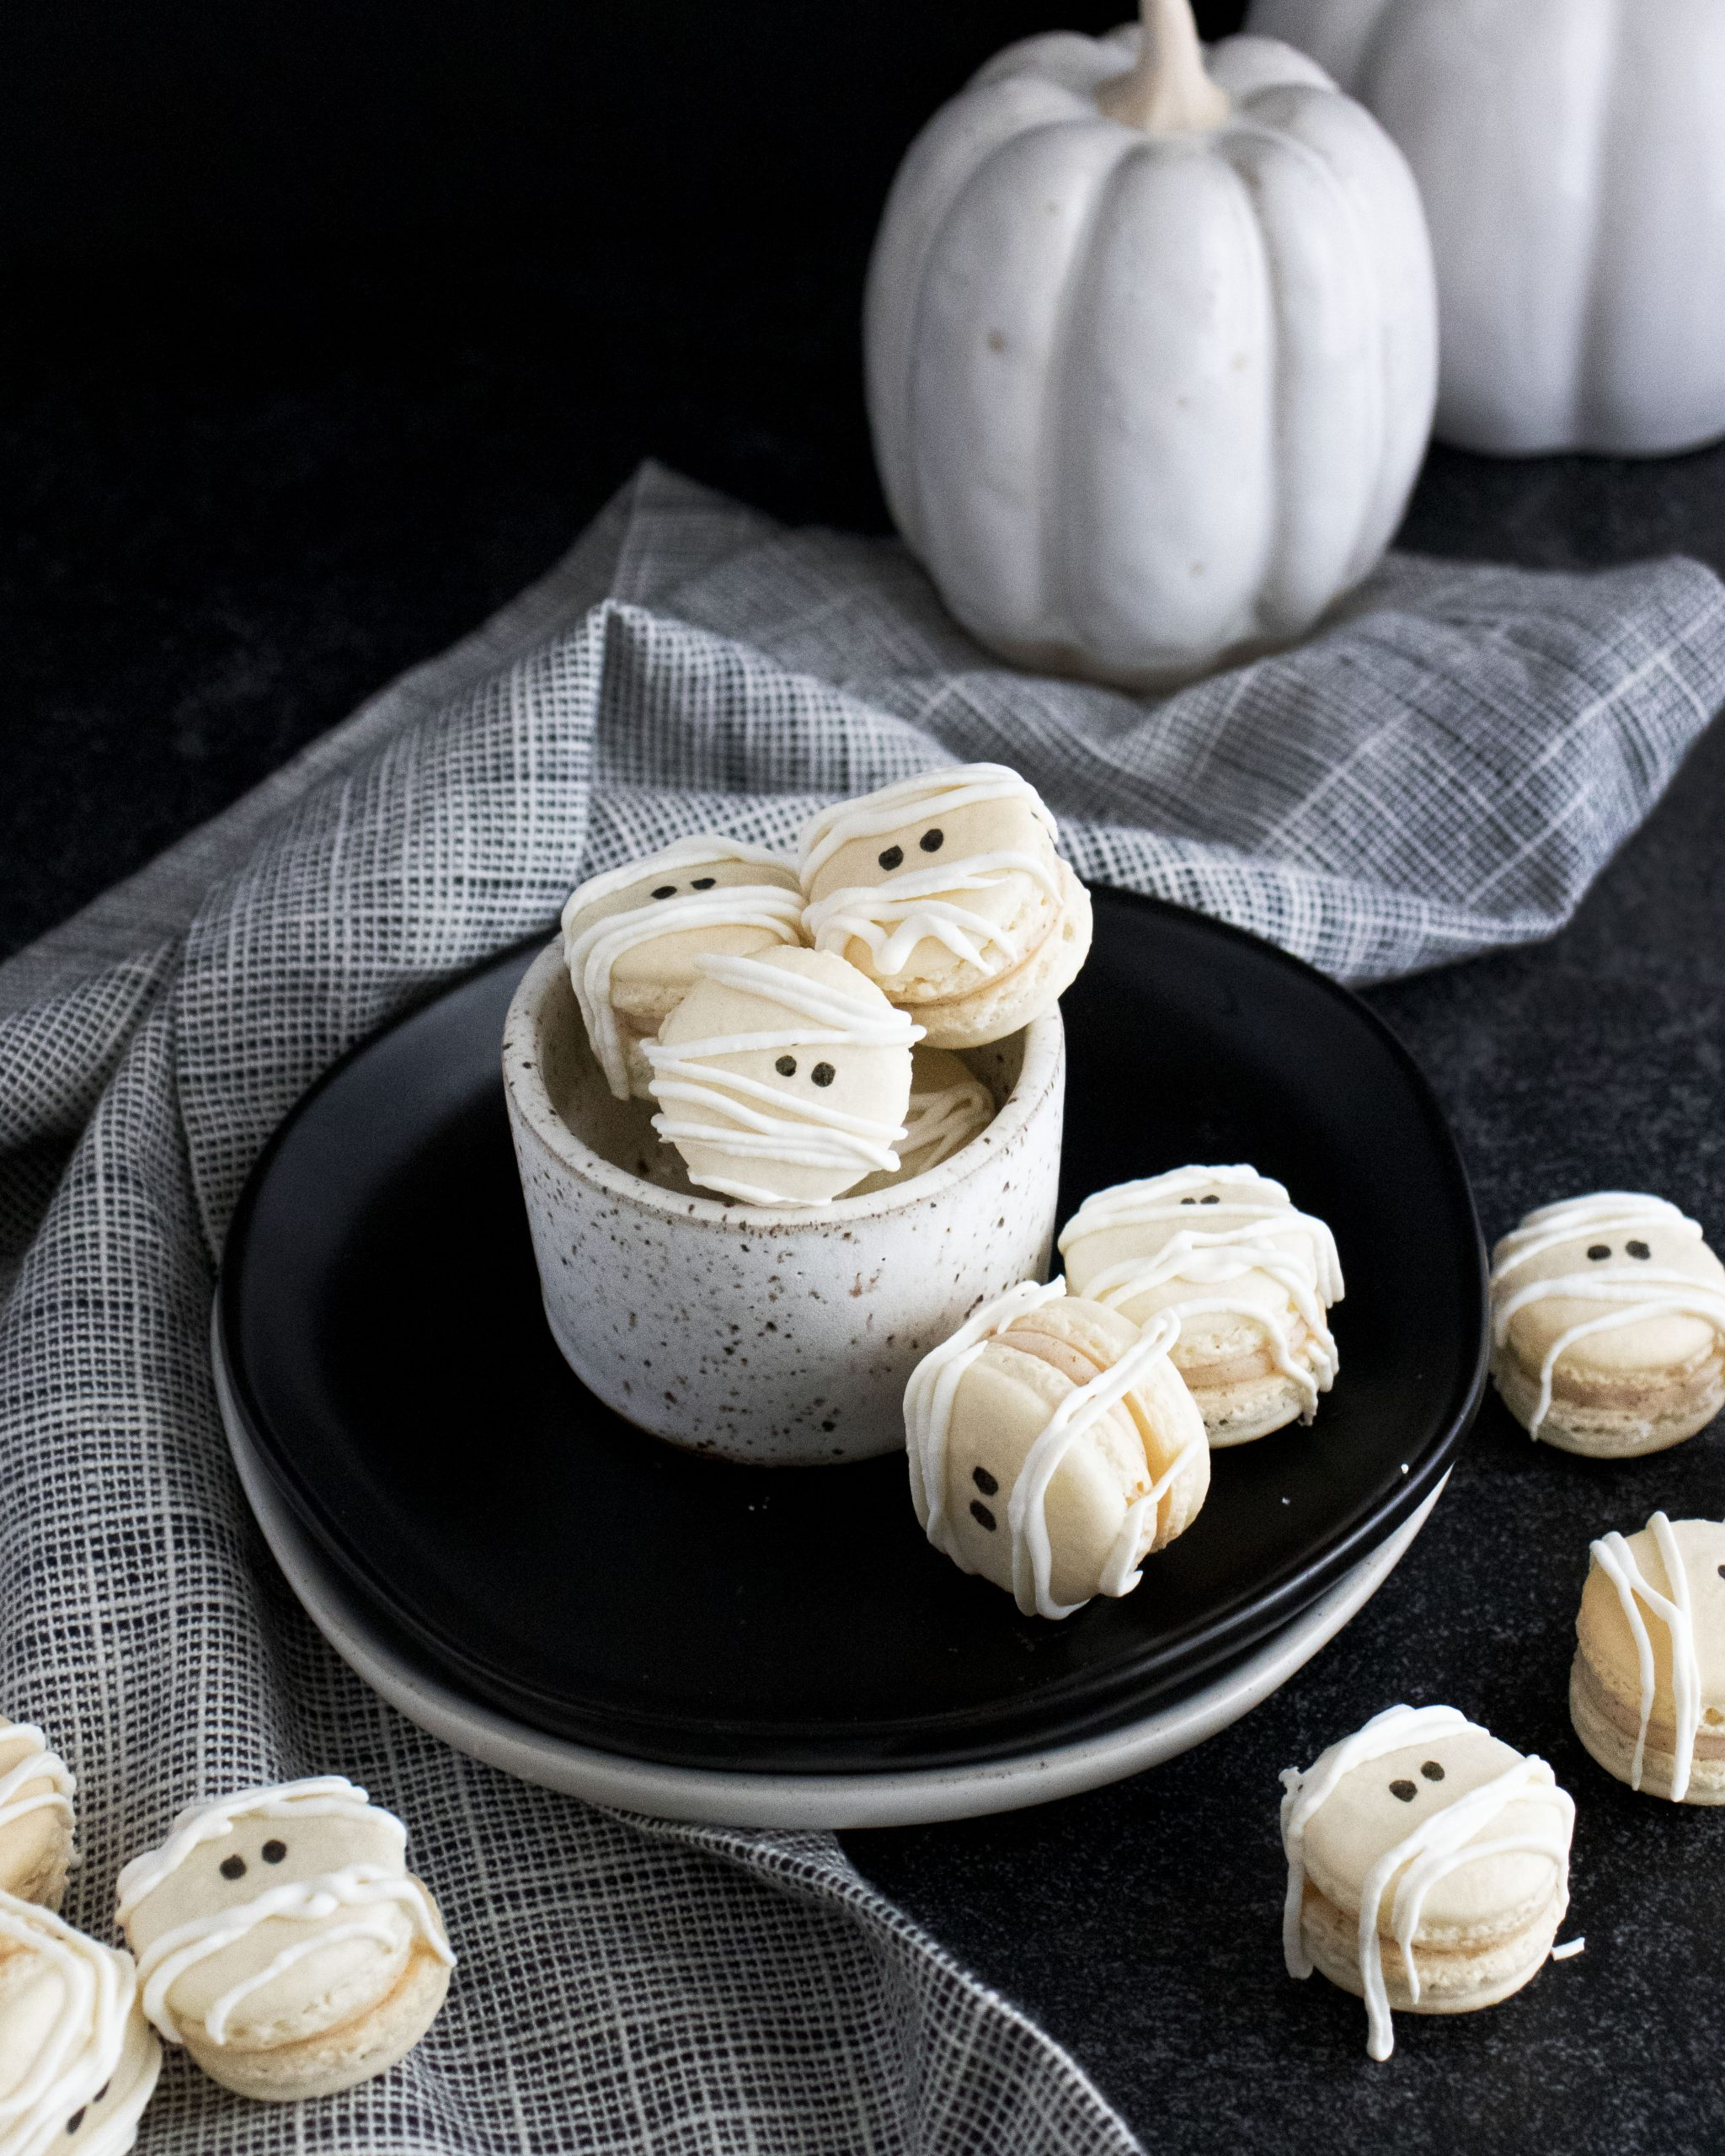 Macarons are really fun to make once you get the hang of them. If you're looking for a fun Halloween treat, check out these Mummy French Macarons. #macarons #halloween #cookies #frenchmacarons #halloweenfood #manthatlooksgood